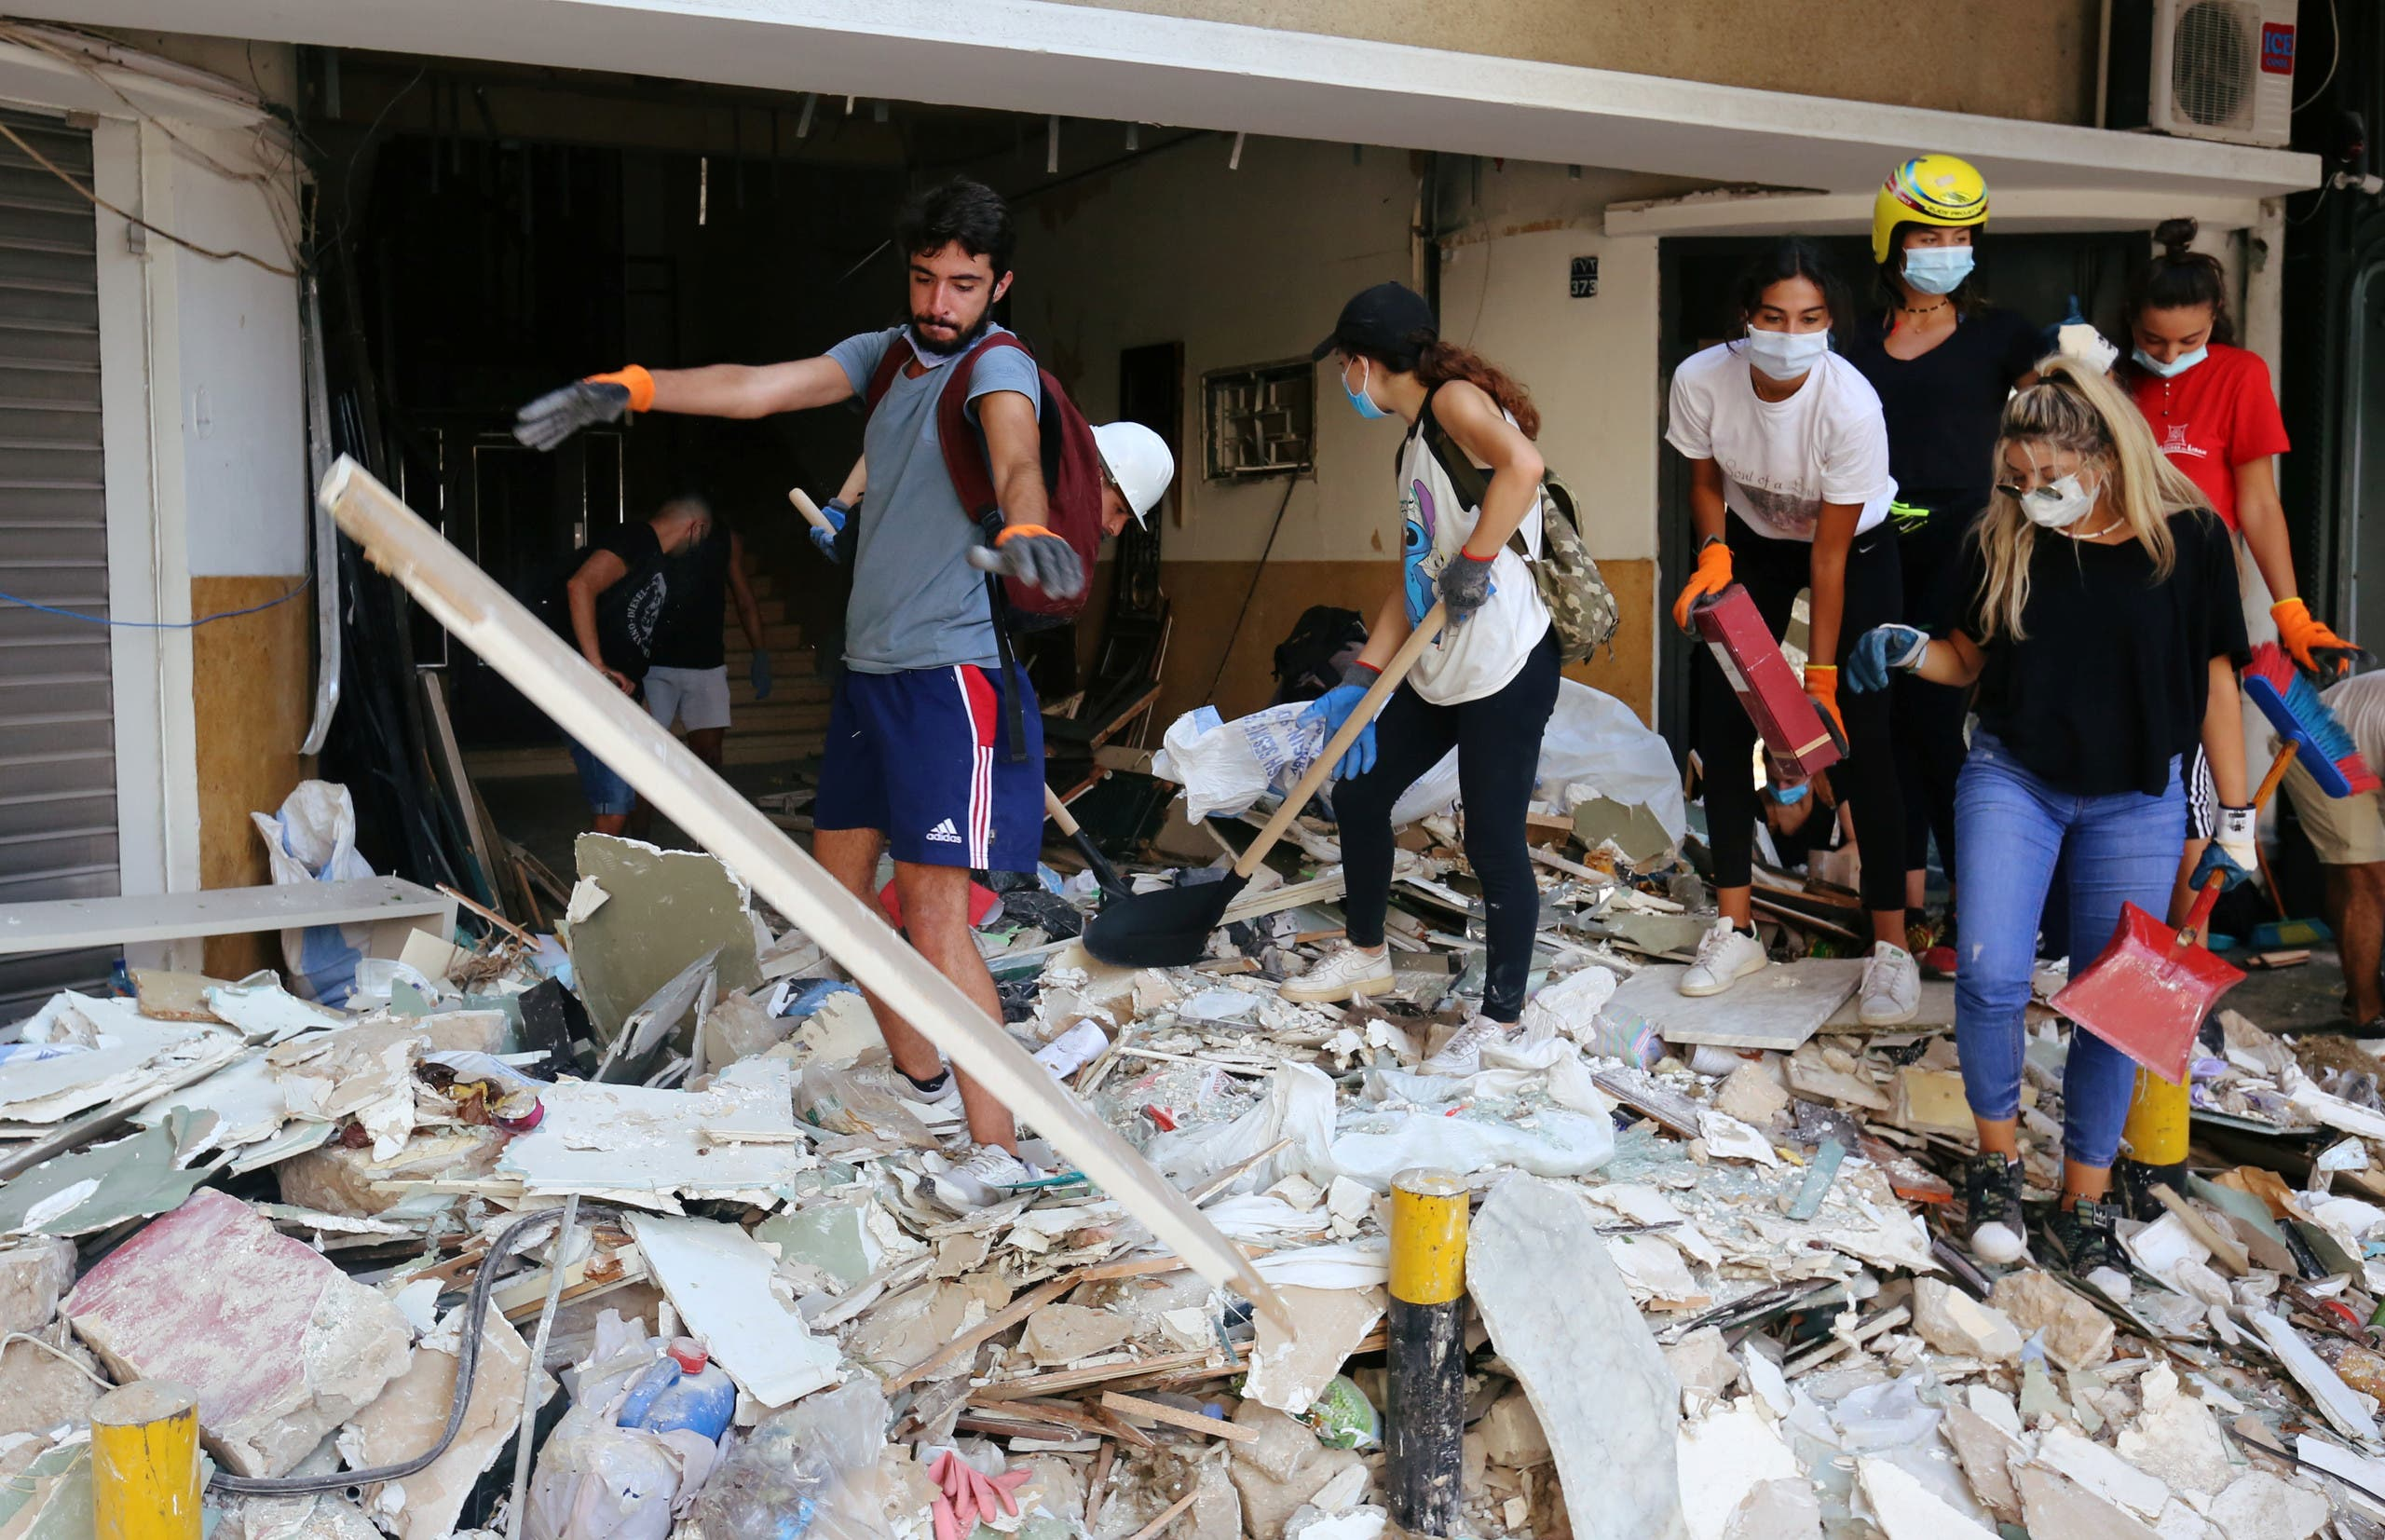 Volunteers clean rubble from the streets following Tuesday's blast in Beirut's port area, in Beirut, Lebanon August 7, 2020. (Reuters)